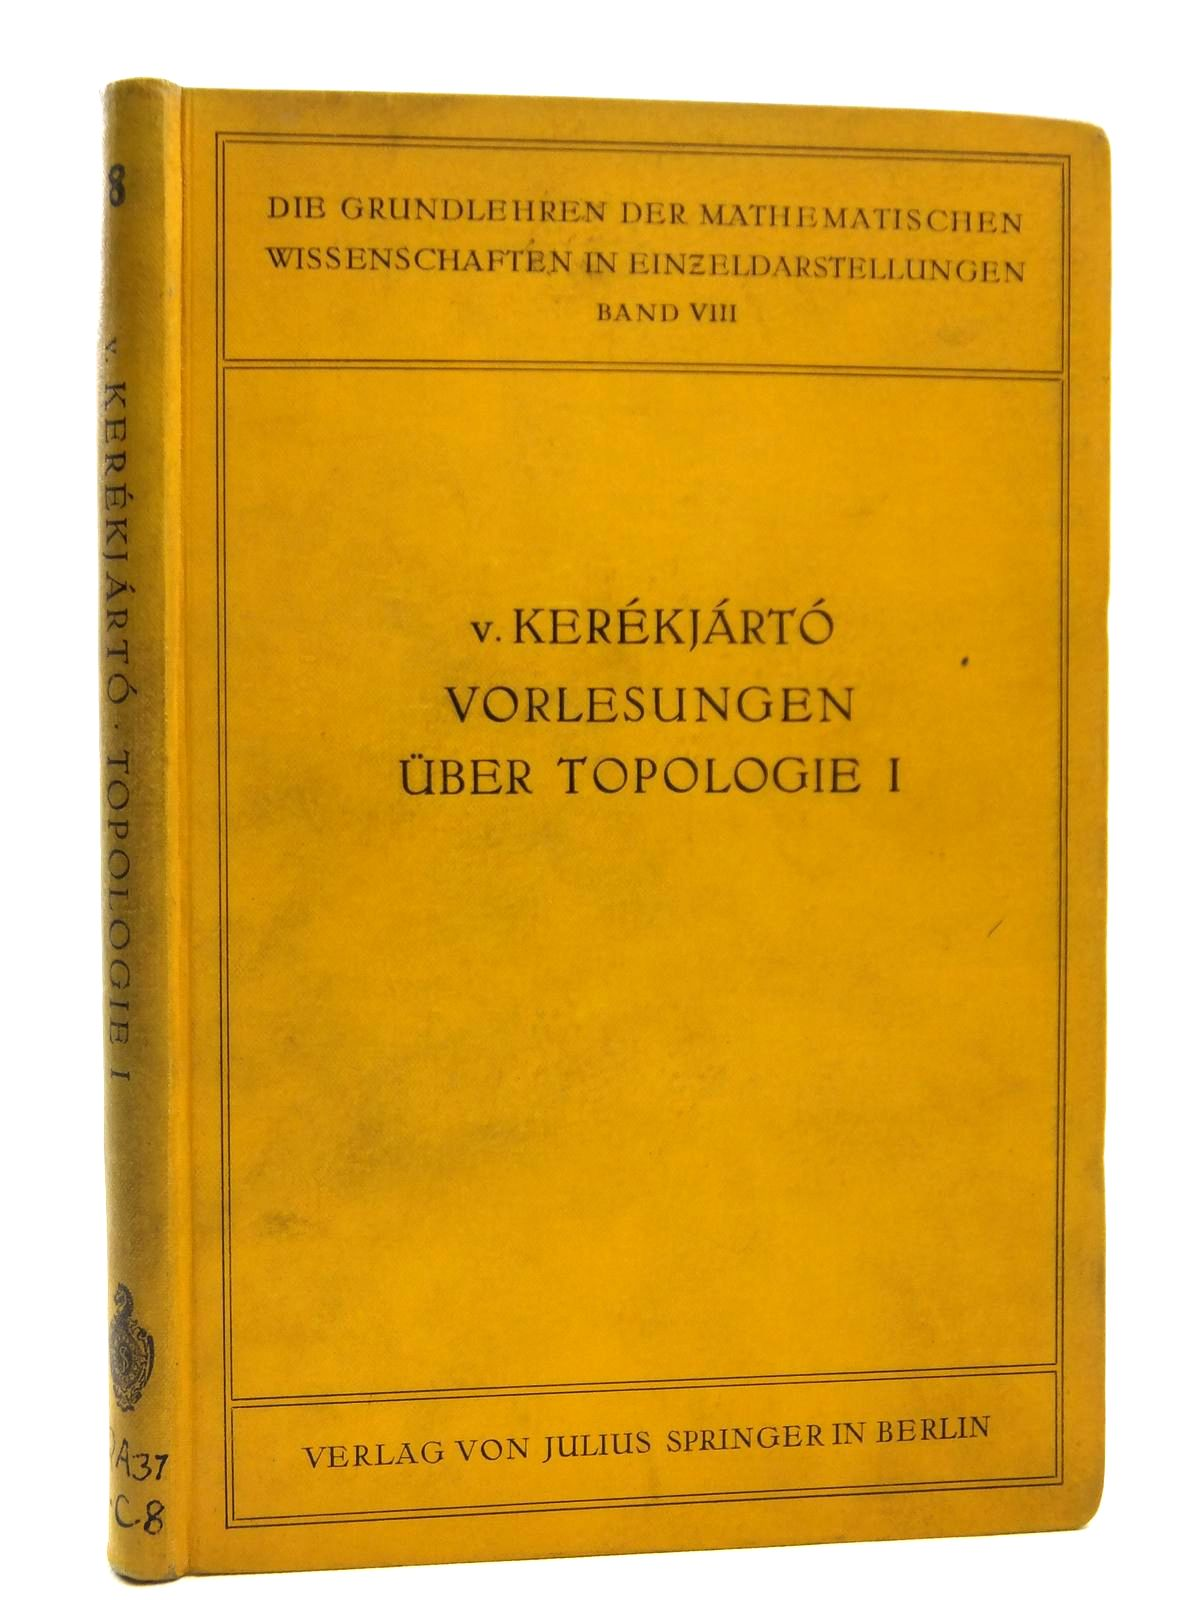 Photo of VORLESUNGEN UBER TOPOLOGIE written by Kerekjarto, B.V. published by Julius Springer (STOCK CODE: 2120871)  for sale by Stella & Rose's Books